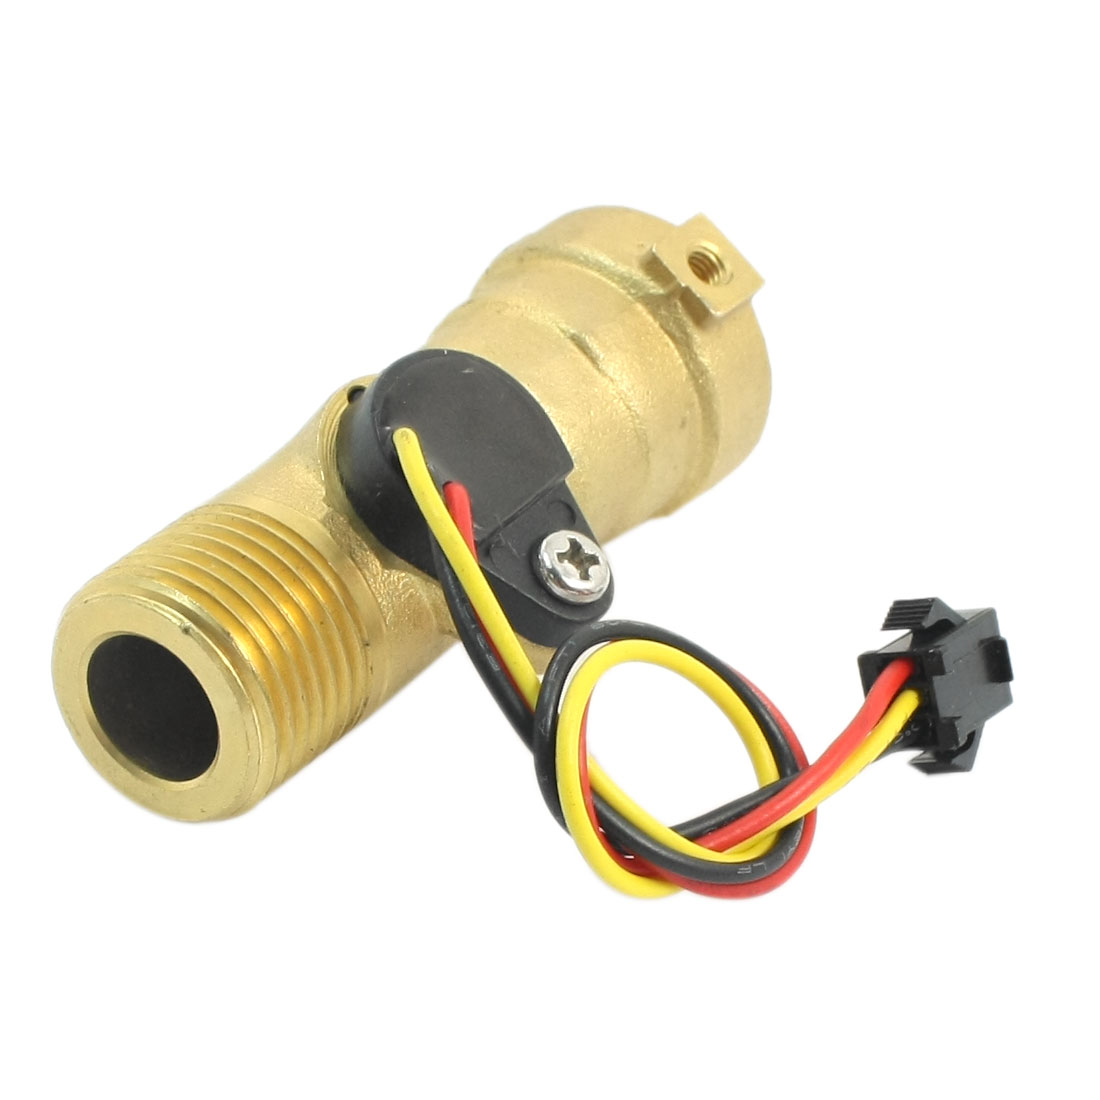 1-30L/min G1/2 Threaded Brass Body Wired Hall Sensor Luquid Water Flow Meter Flowmeter